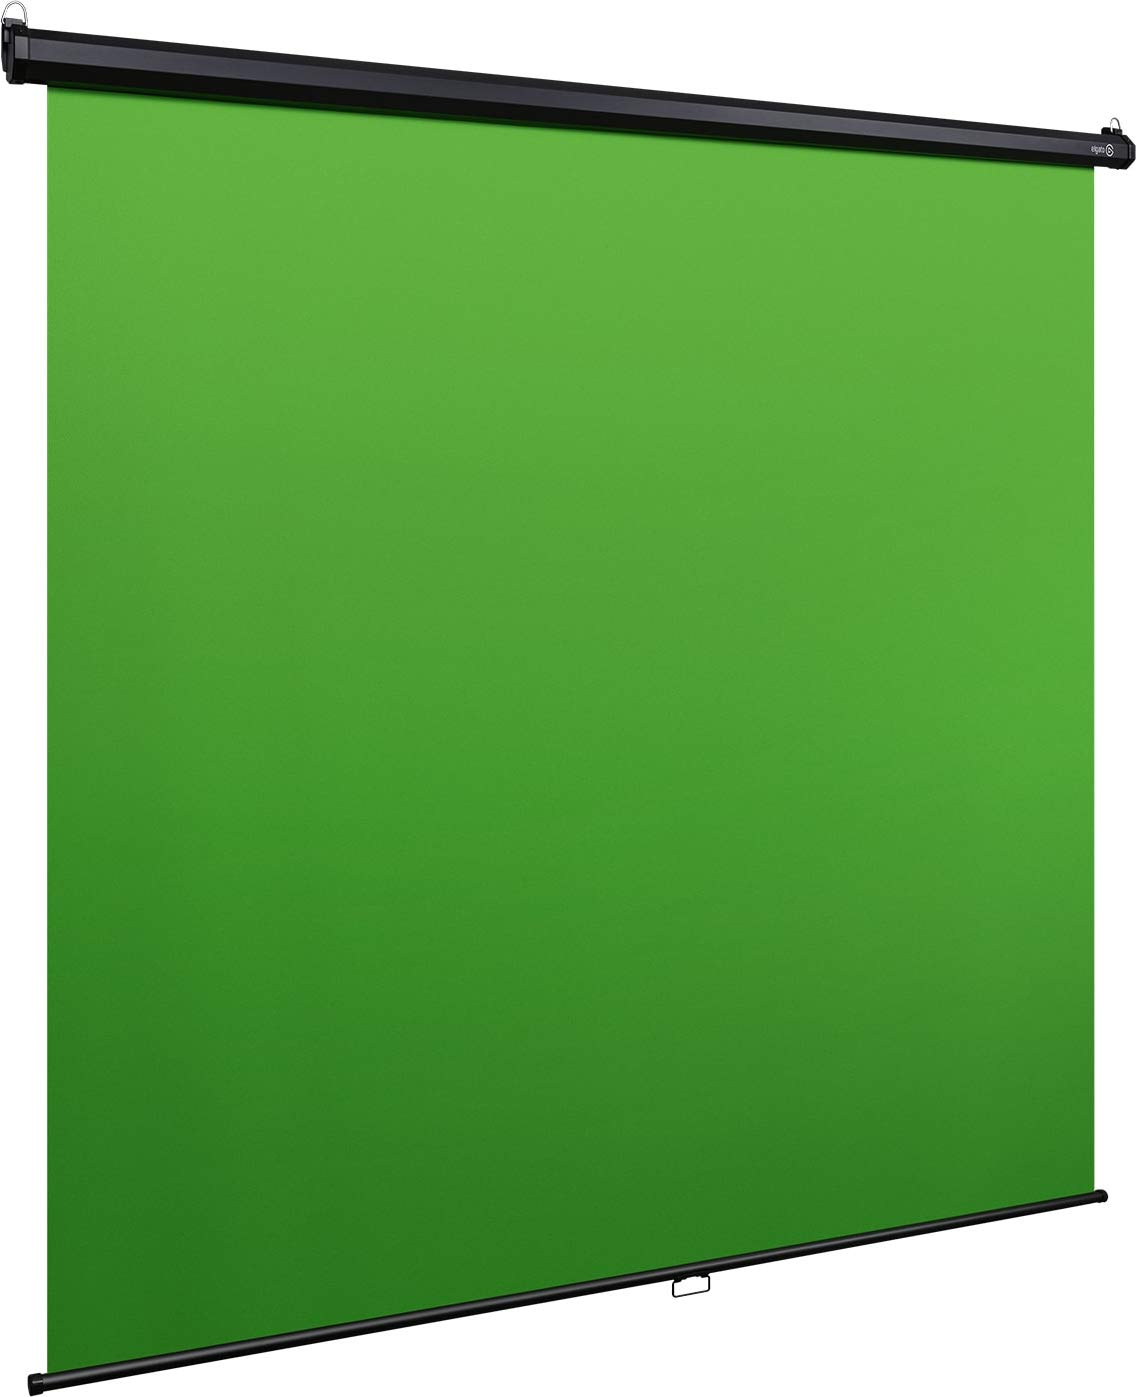 Corsair Elgato Green Screen MT - Mountable Chroma Key Panel for Background Removal, Wrinkle-Resistant Chroma-Green Fabric by Corsair